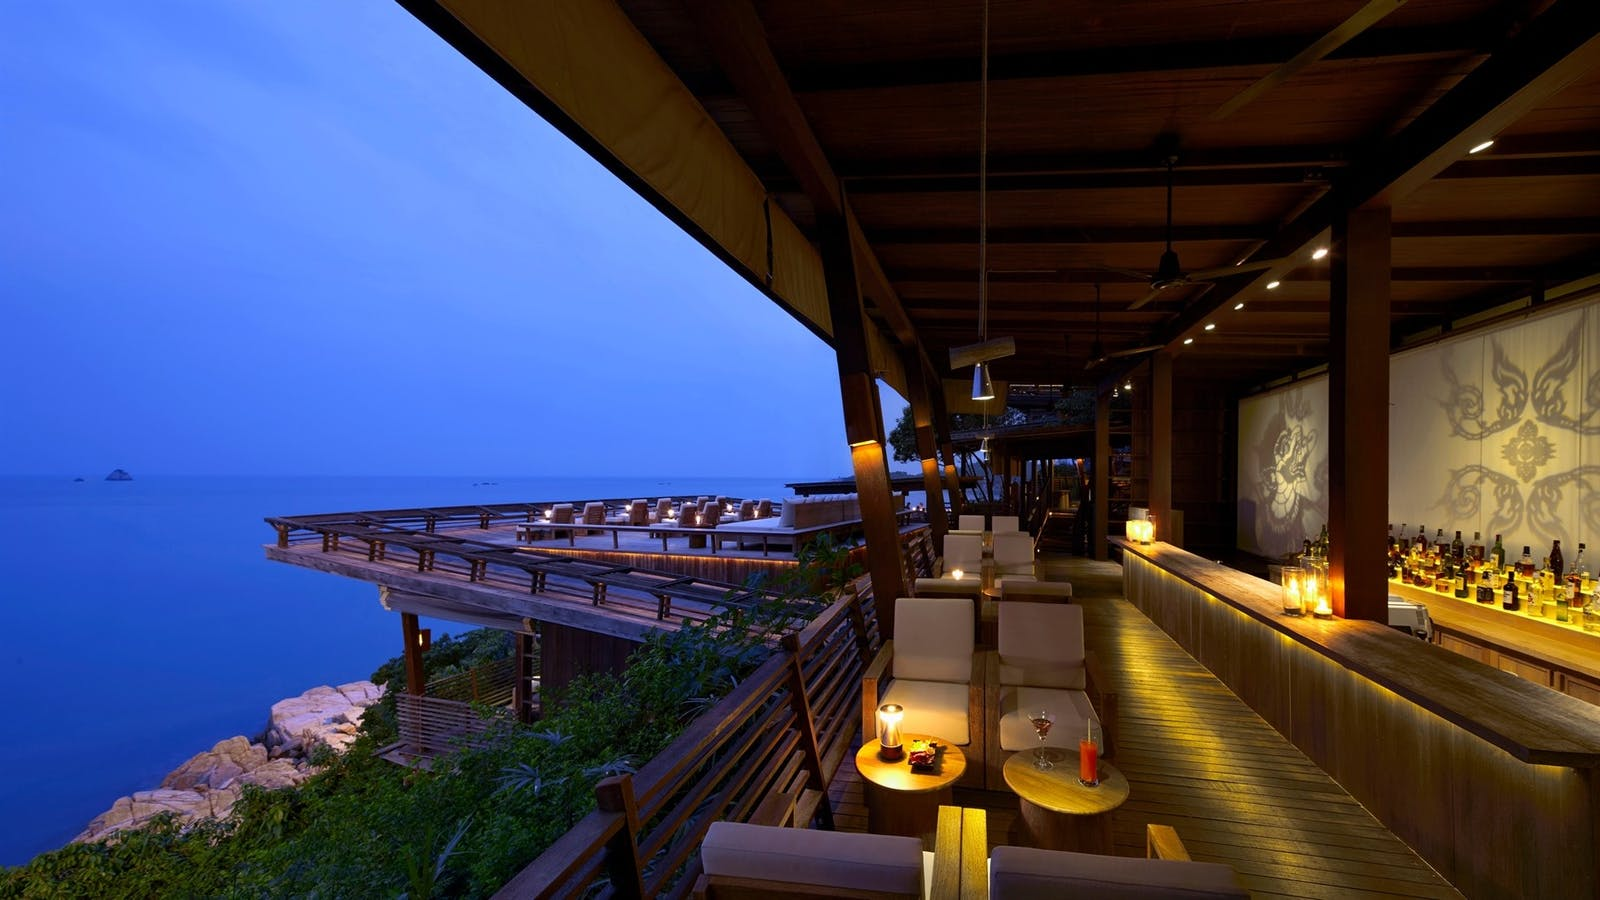 Dining on the Rocks bar area, Six Senses Samui, Koh Samui, Thailand